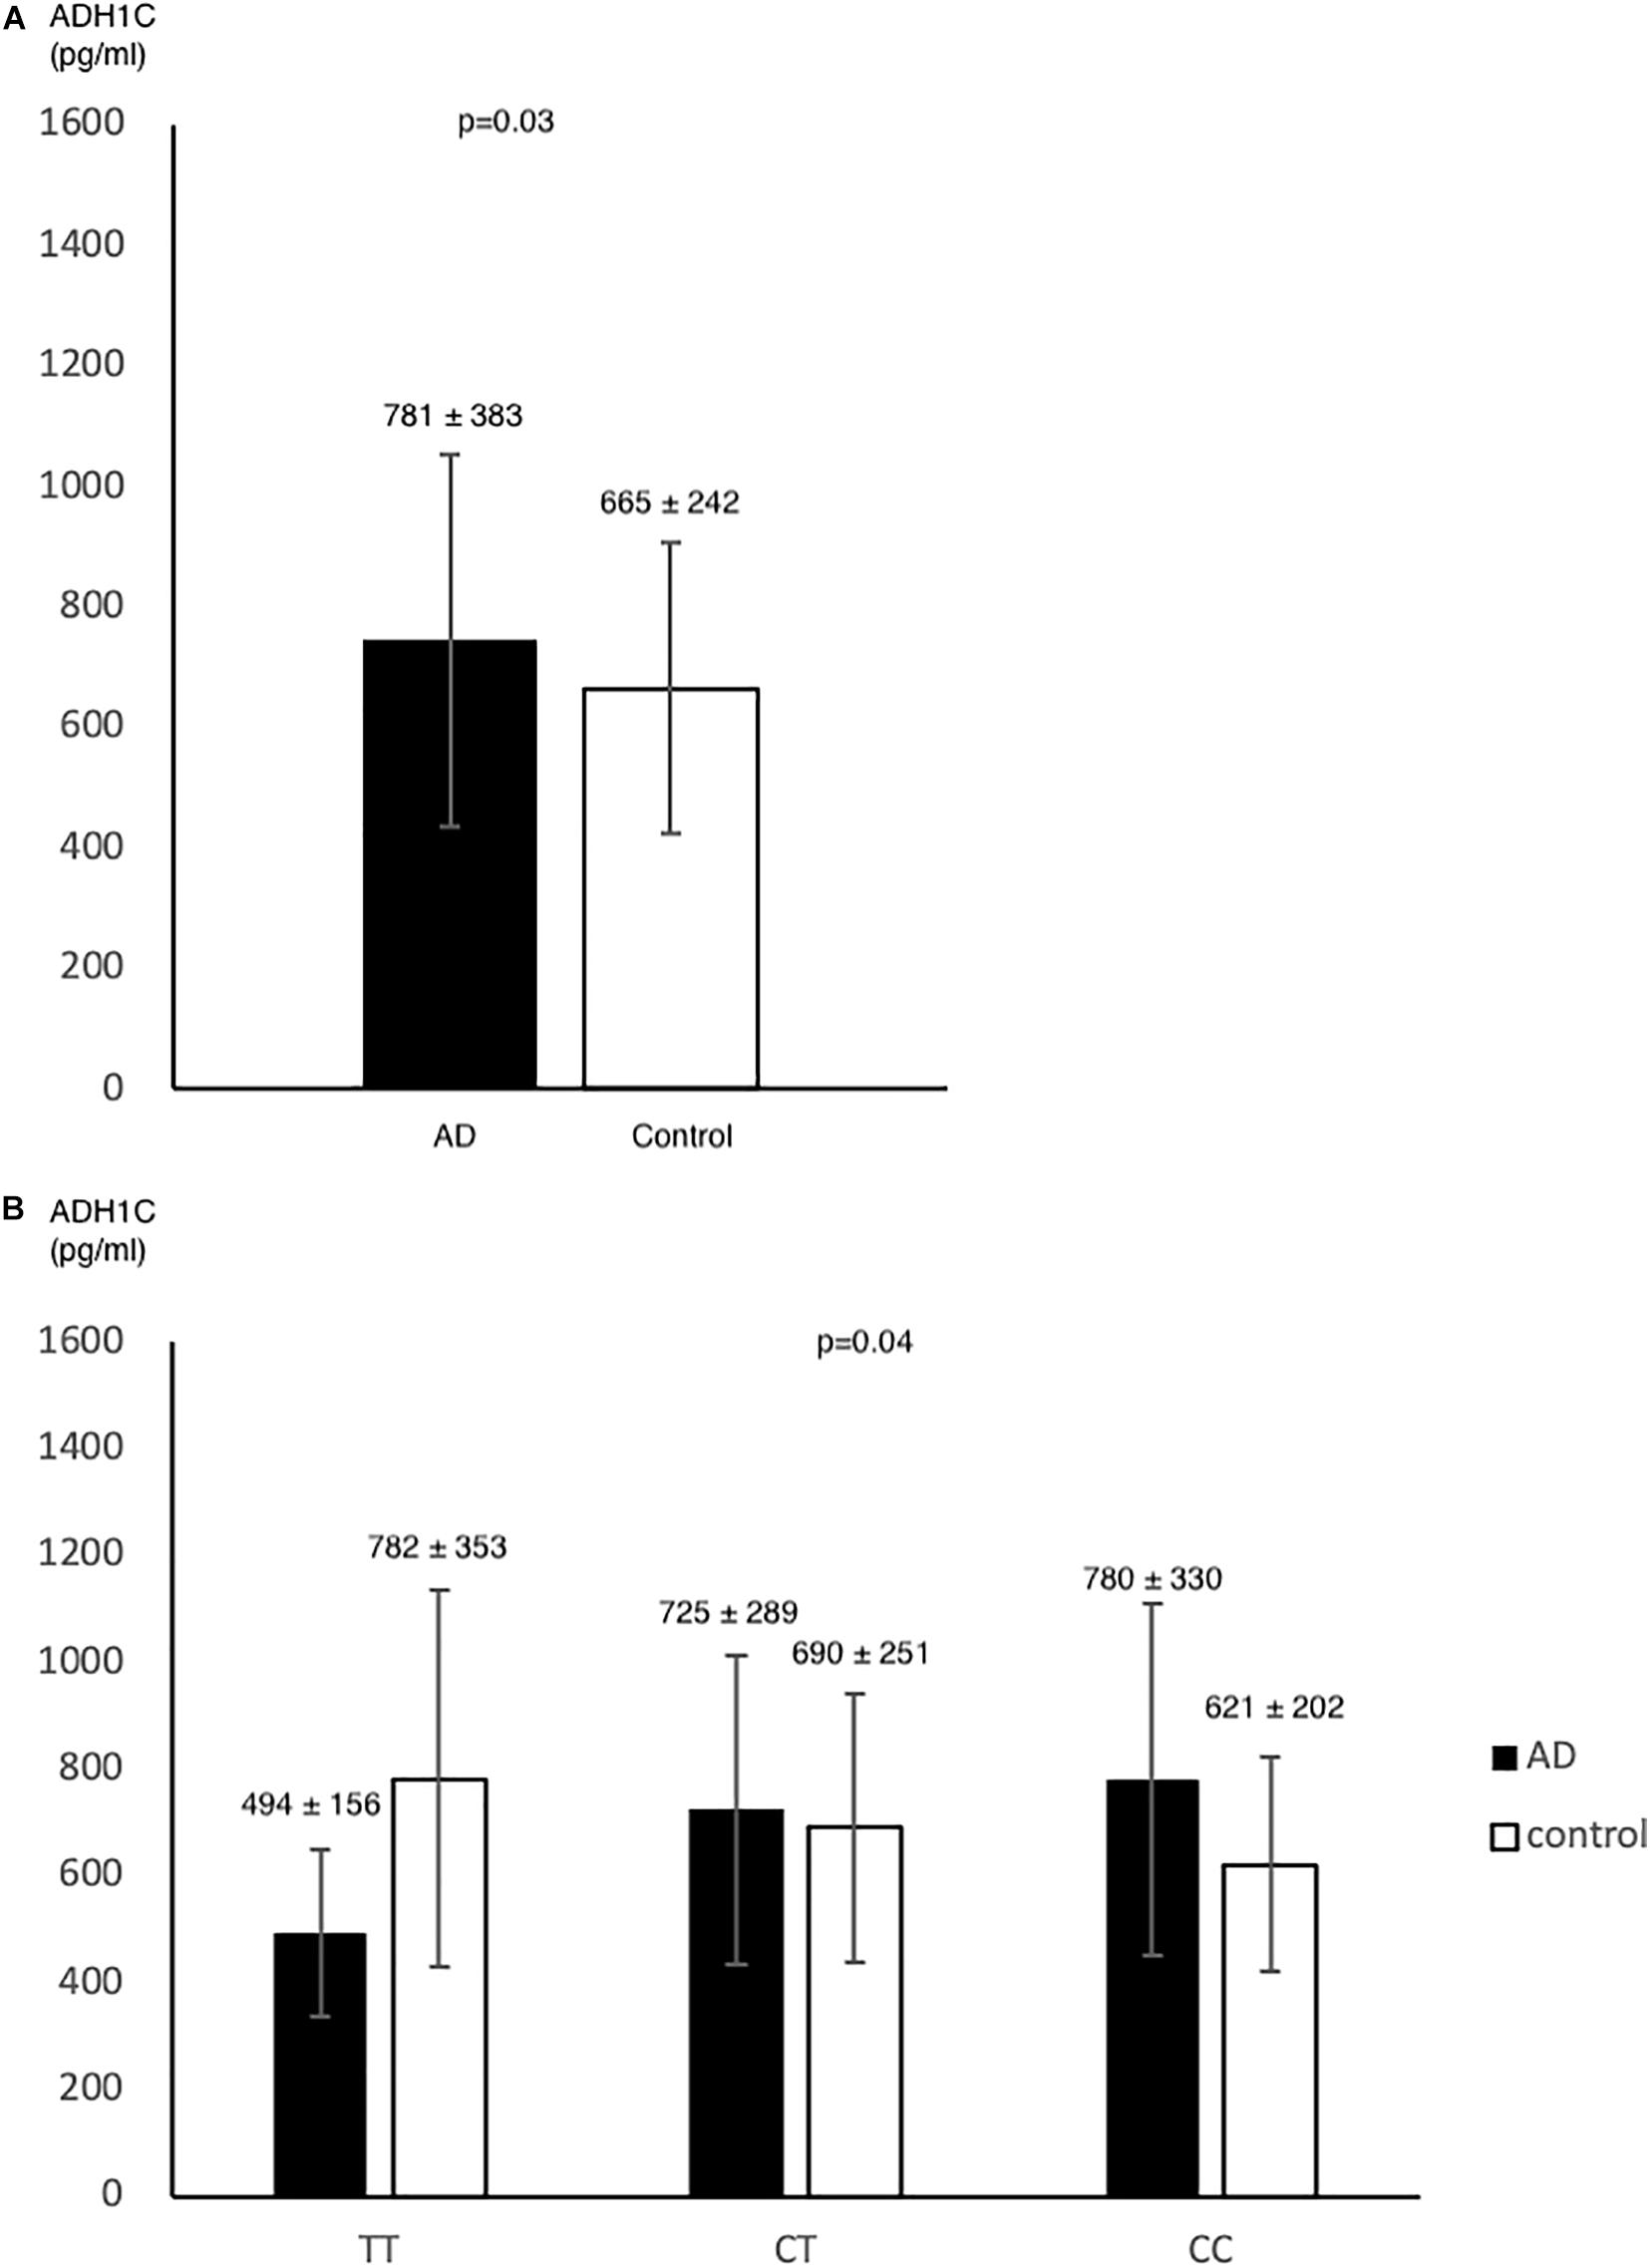 Frontiers | Association Study of Alcohol Dehydrogenase and ...